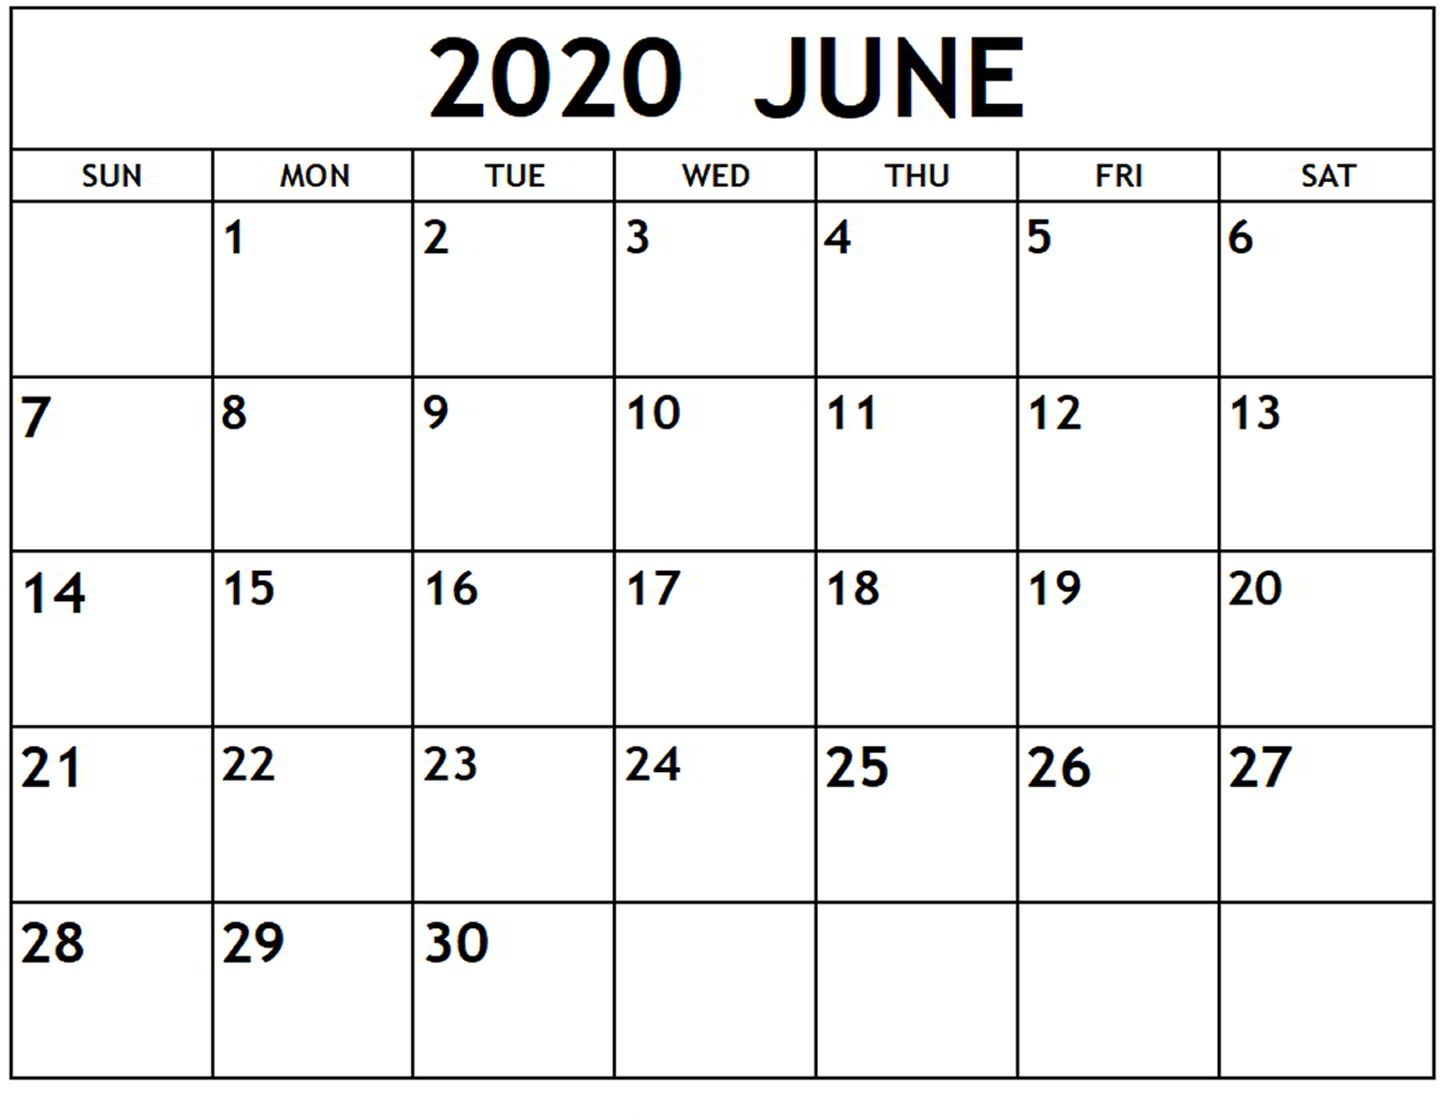 June 2020 calendar template download